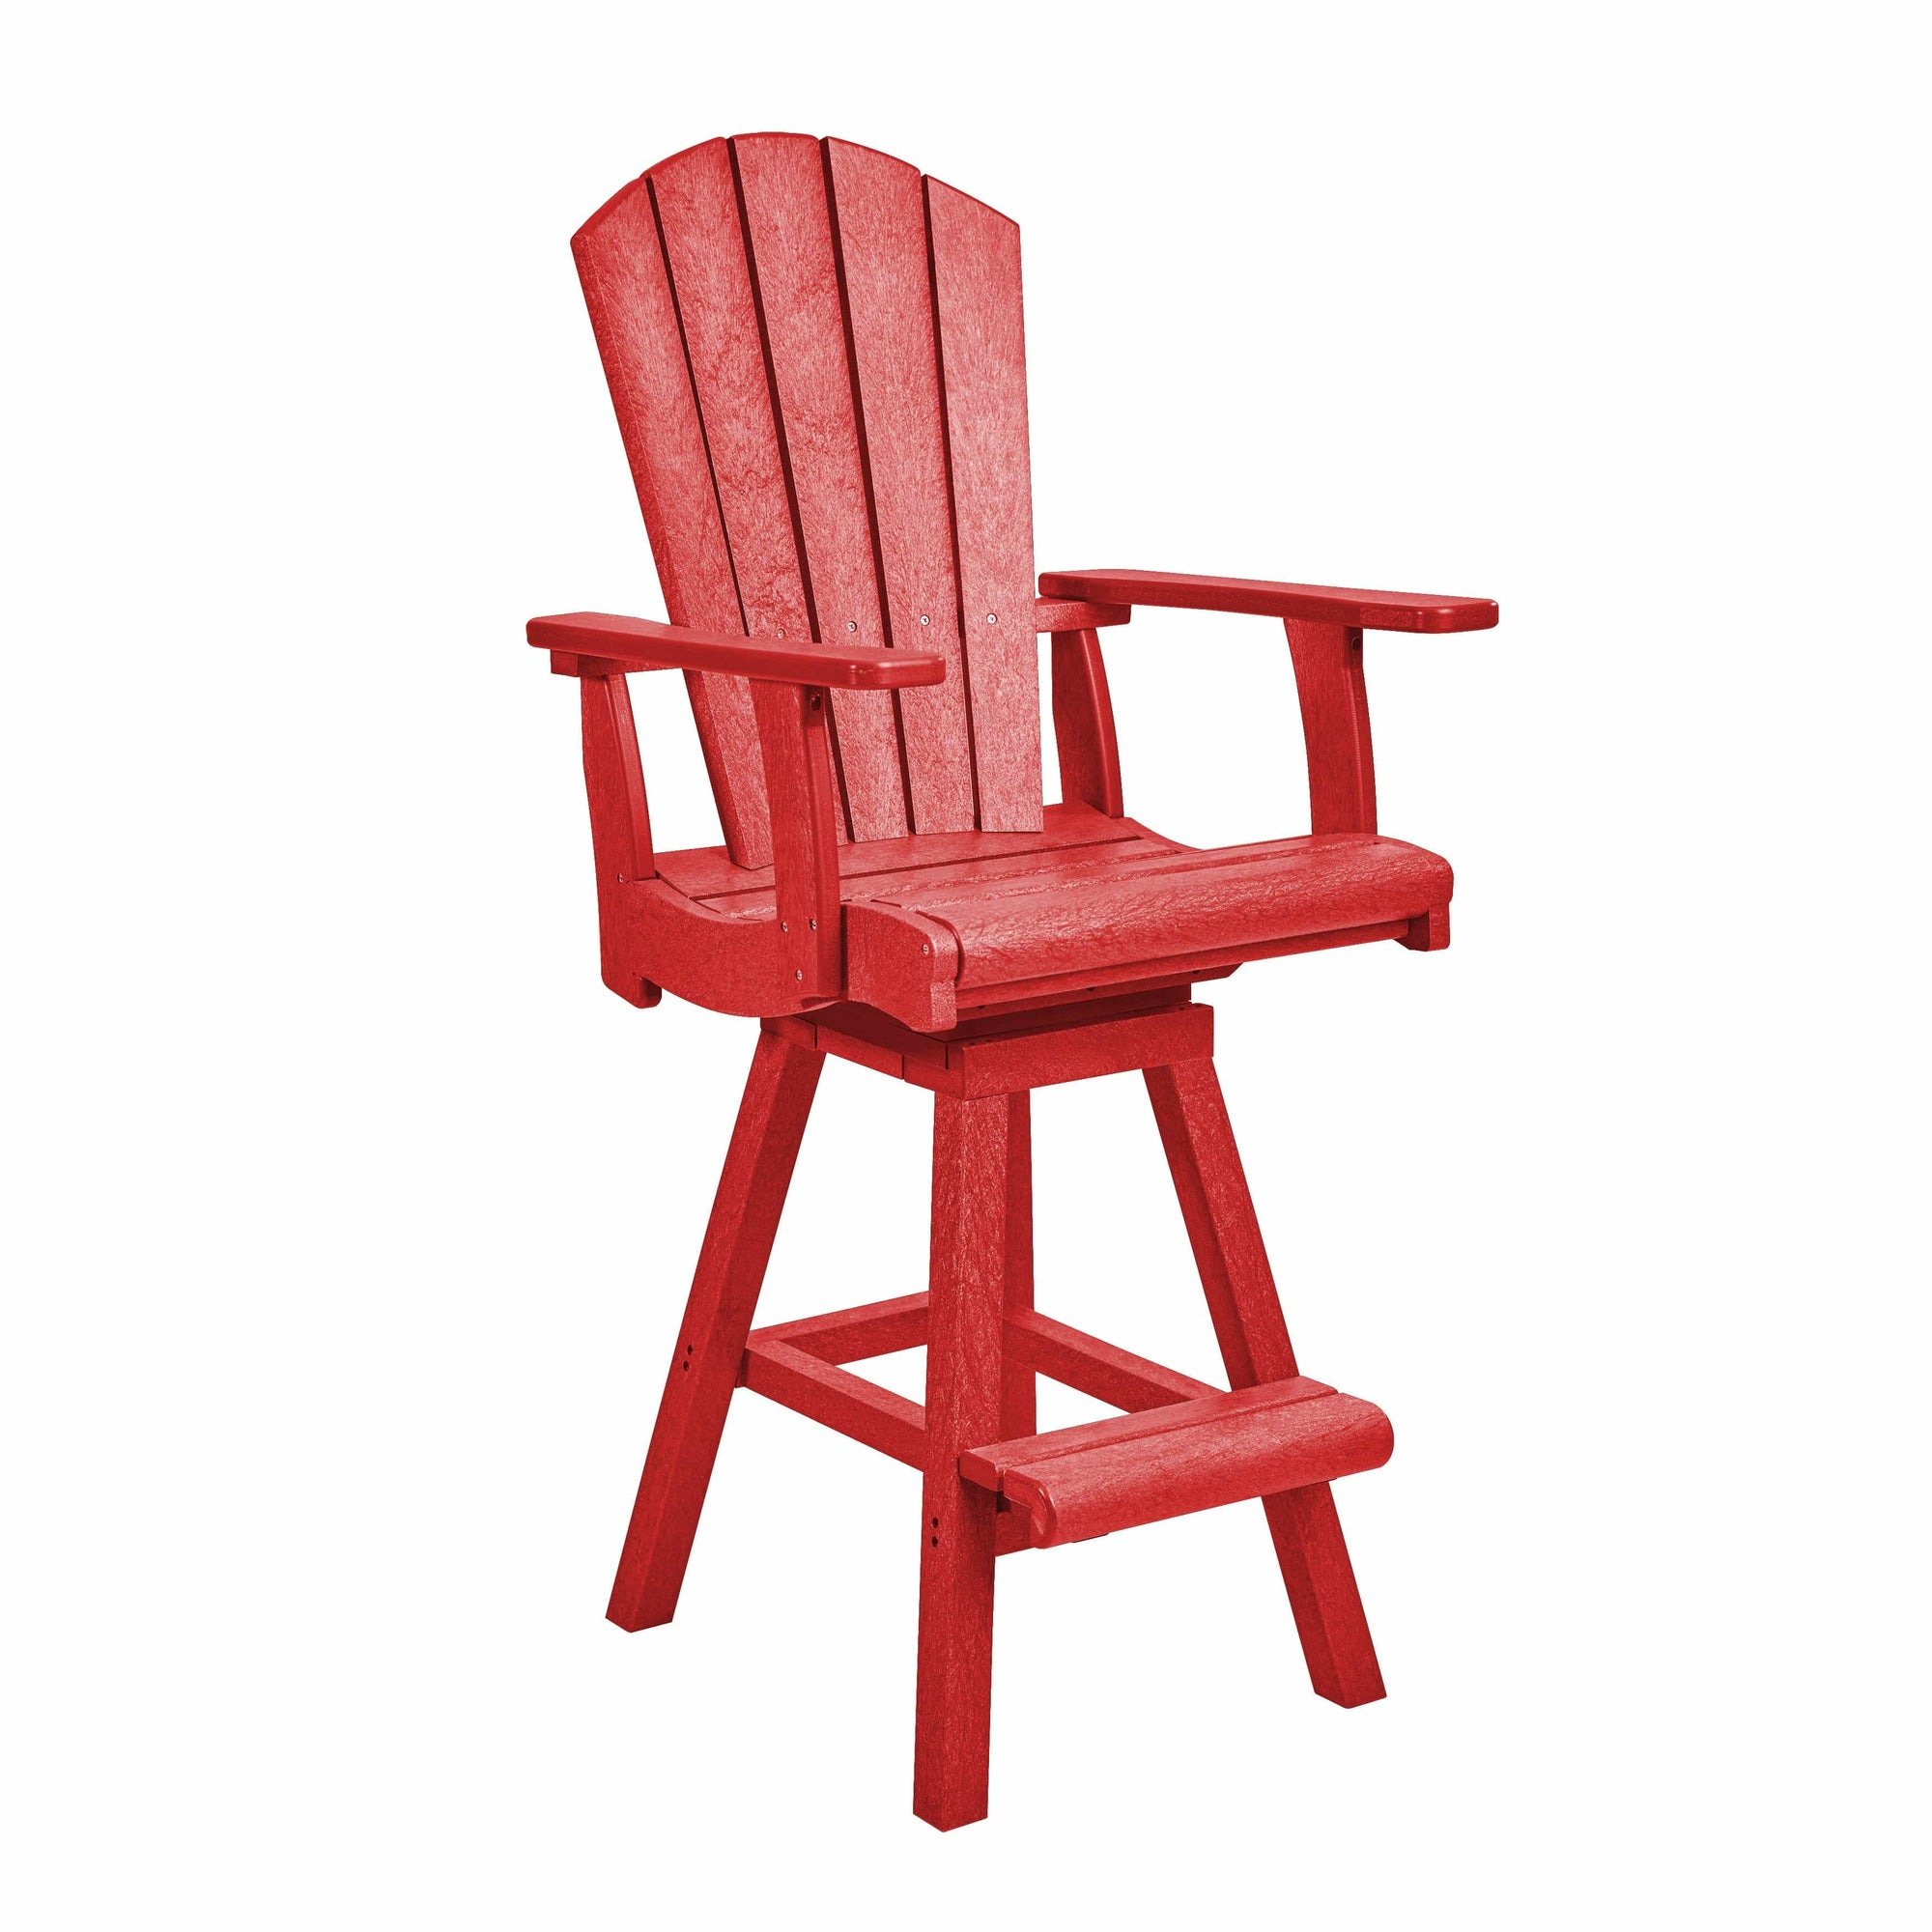 C.R. Plastic Products Bar Chair Red-01 C25 Swivel Pub Chair (Best Seller)